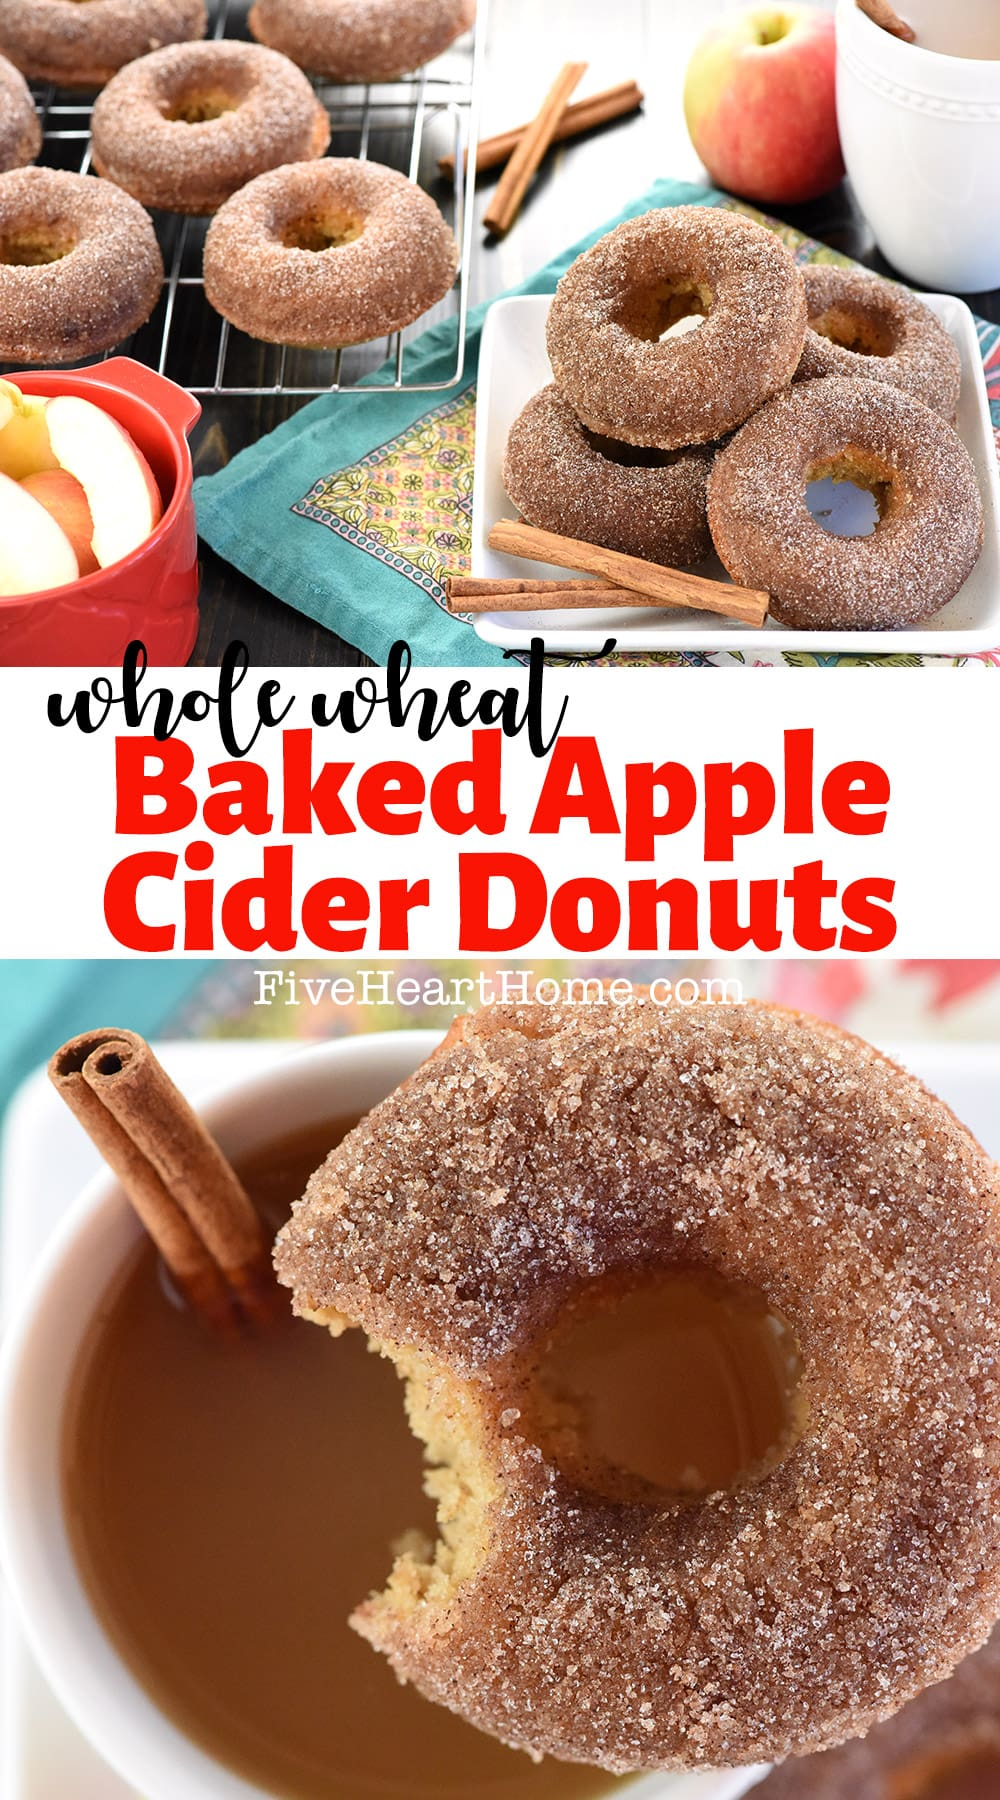 Baked Apple Cider Donuts ~ these delicately spiced, 100% whole wheat donuts are tender on the inside and coated in crunchy cinnamon sugar on the outside for a tasty fall breakfast treat! | FiveHeartHome.com via @fivehearthome